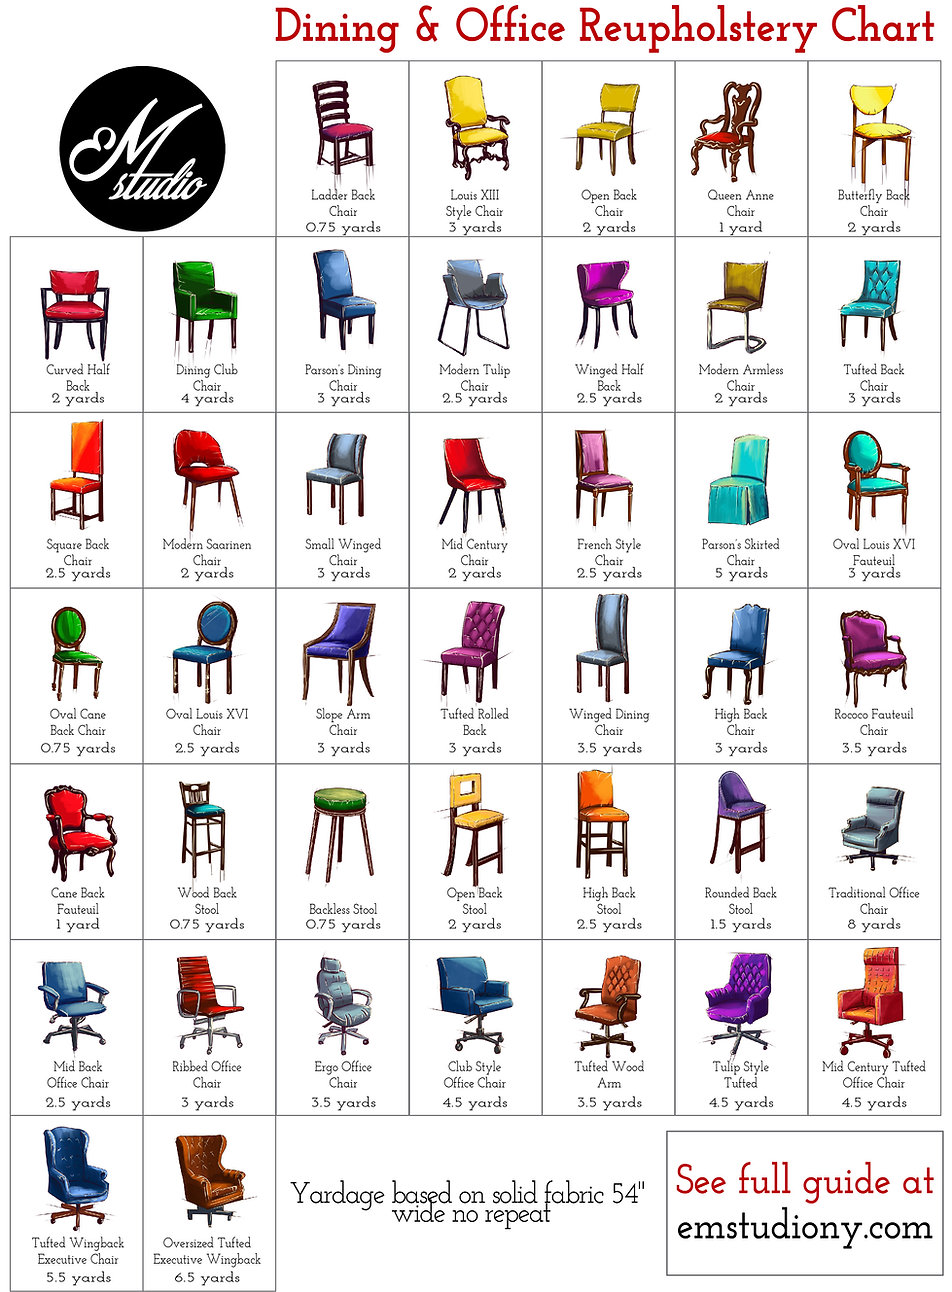 dining chairs full 13-04-2020.jpg